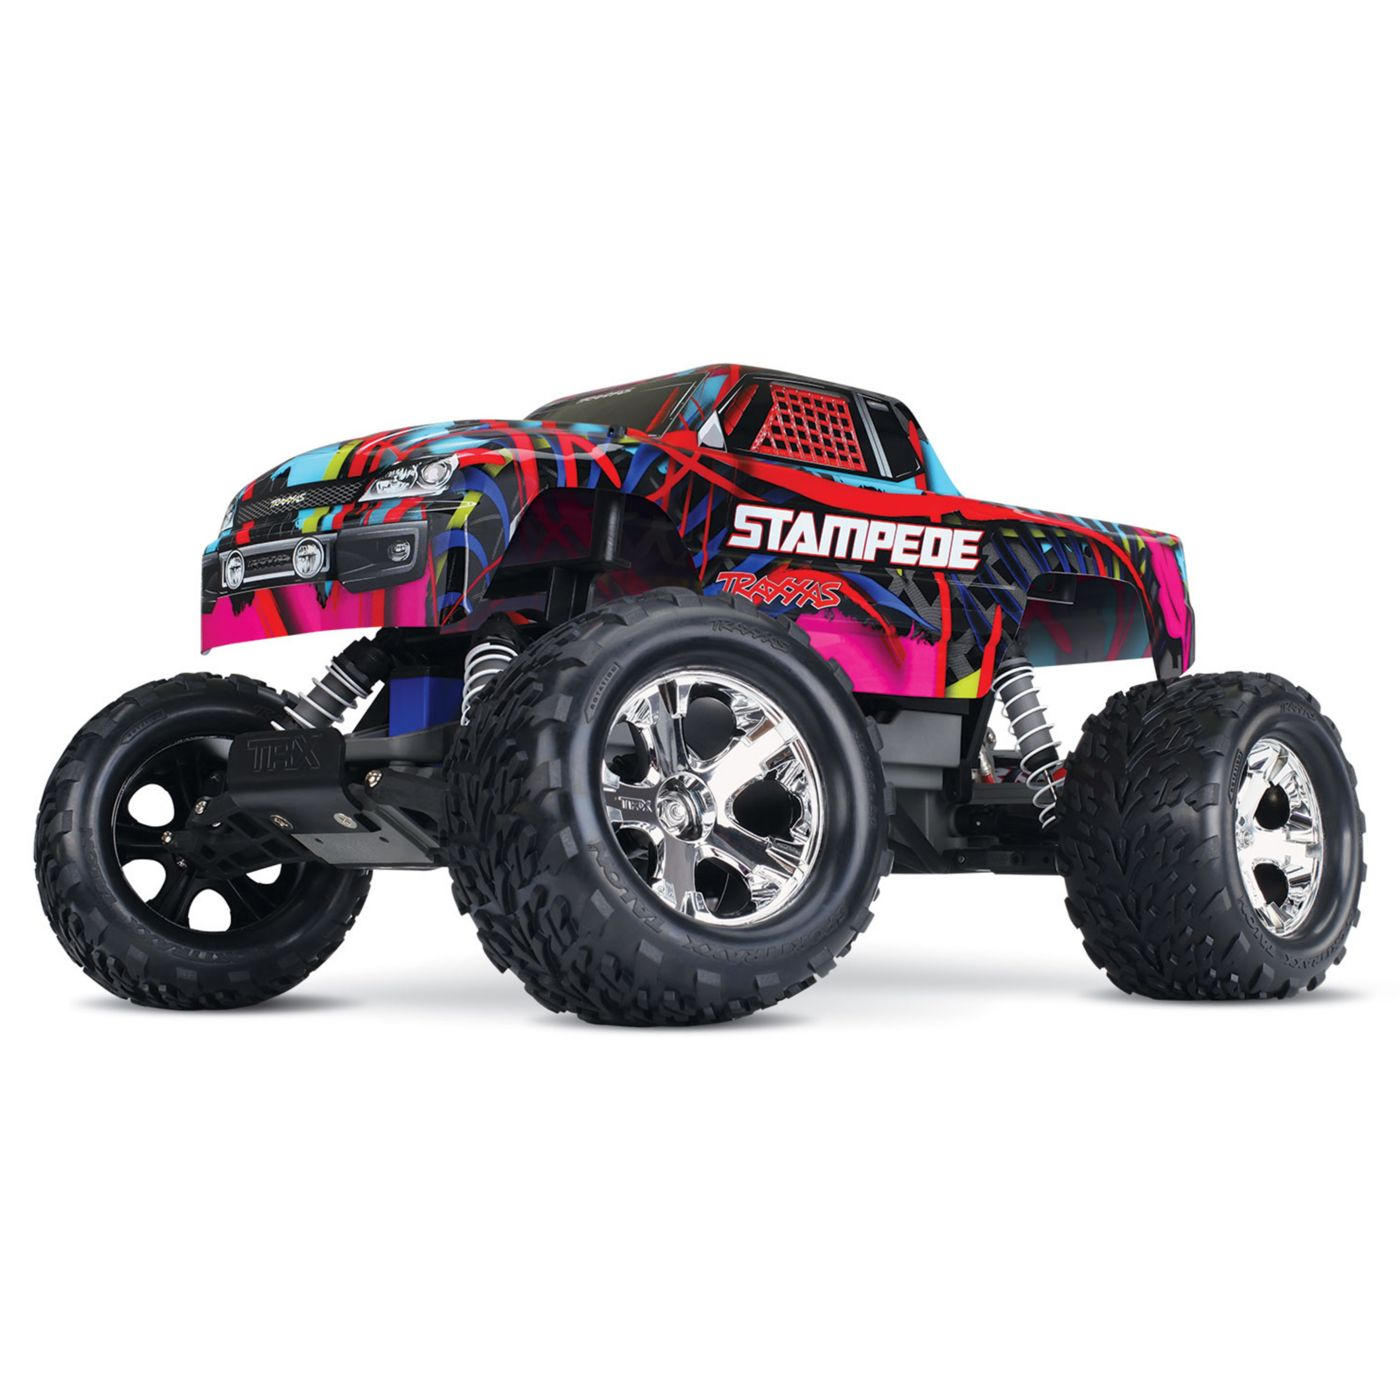 1 10 stampede xl 5 2wd monster truck brushed rtr hawaiian edition rh horizonhobby com traxxas stampede xl5 manual Traxxas Stampede Upgrades